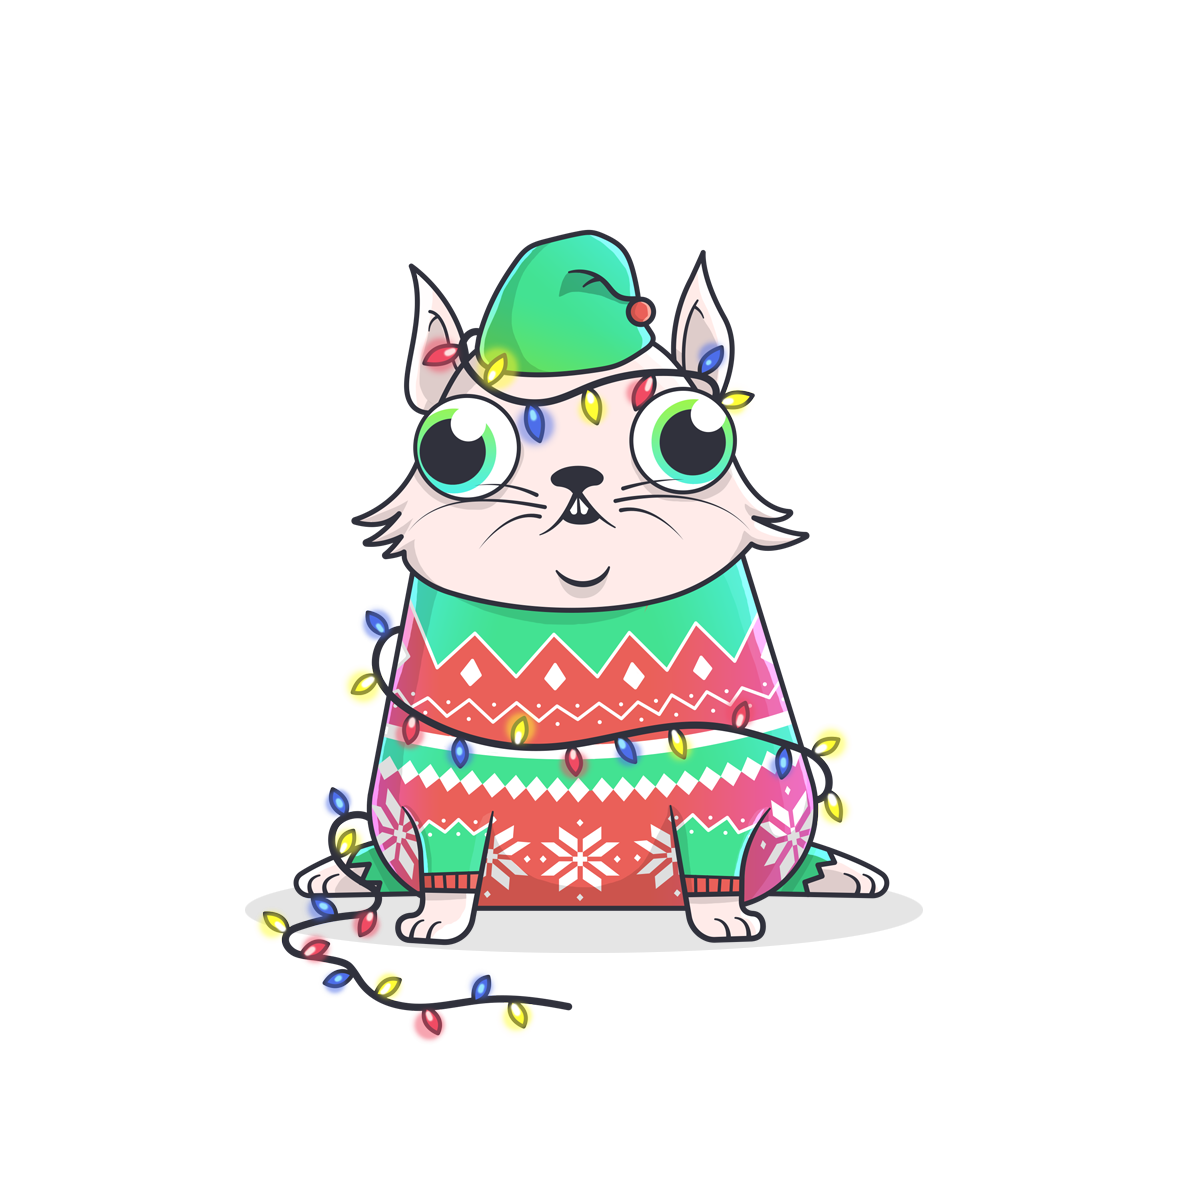 cryptokitty #534103